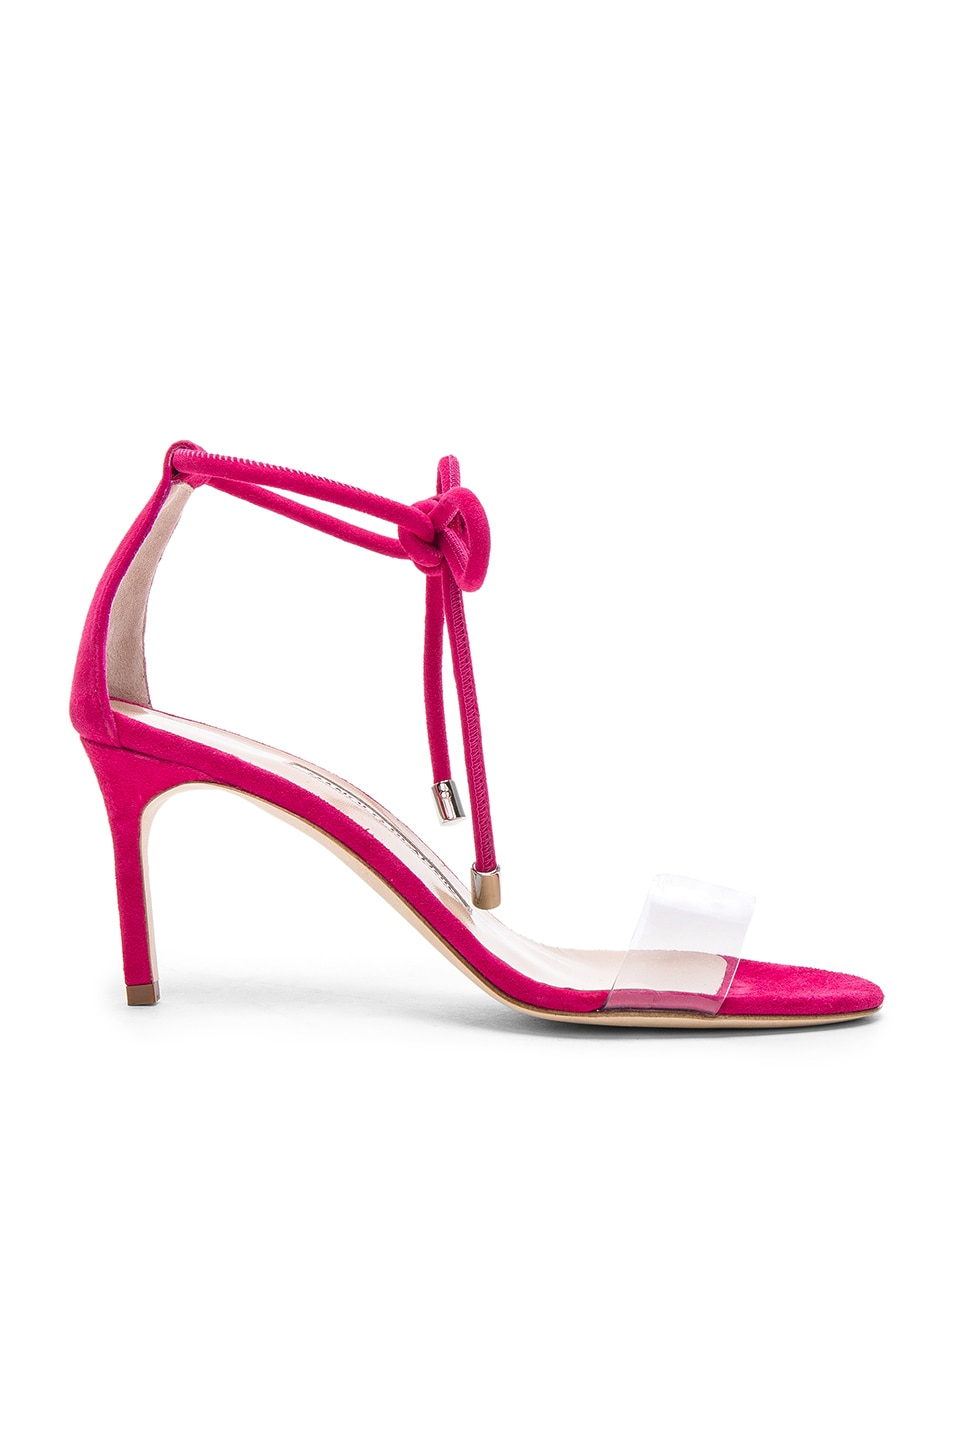 Image 1 of Manolo Blahnik Suede Estro 70 Sandals in Fuxia Suede